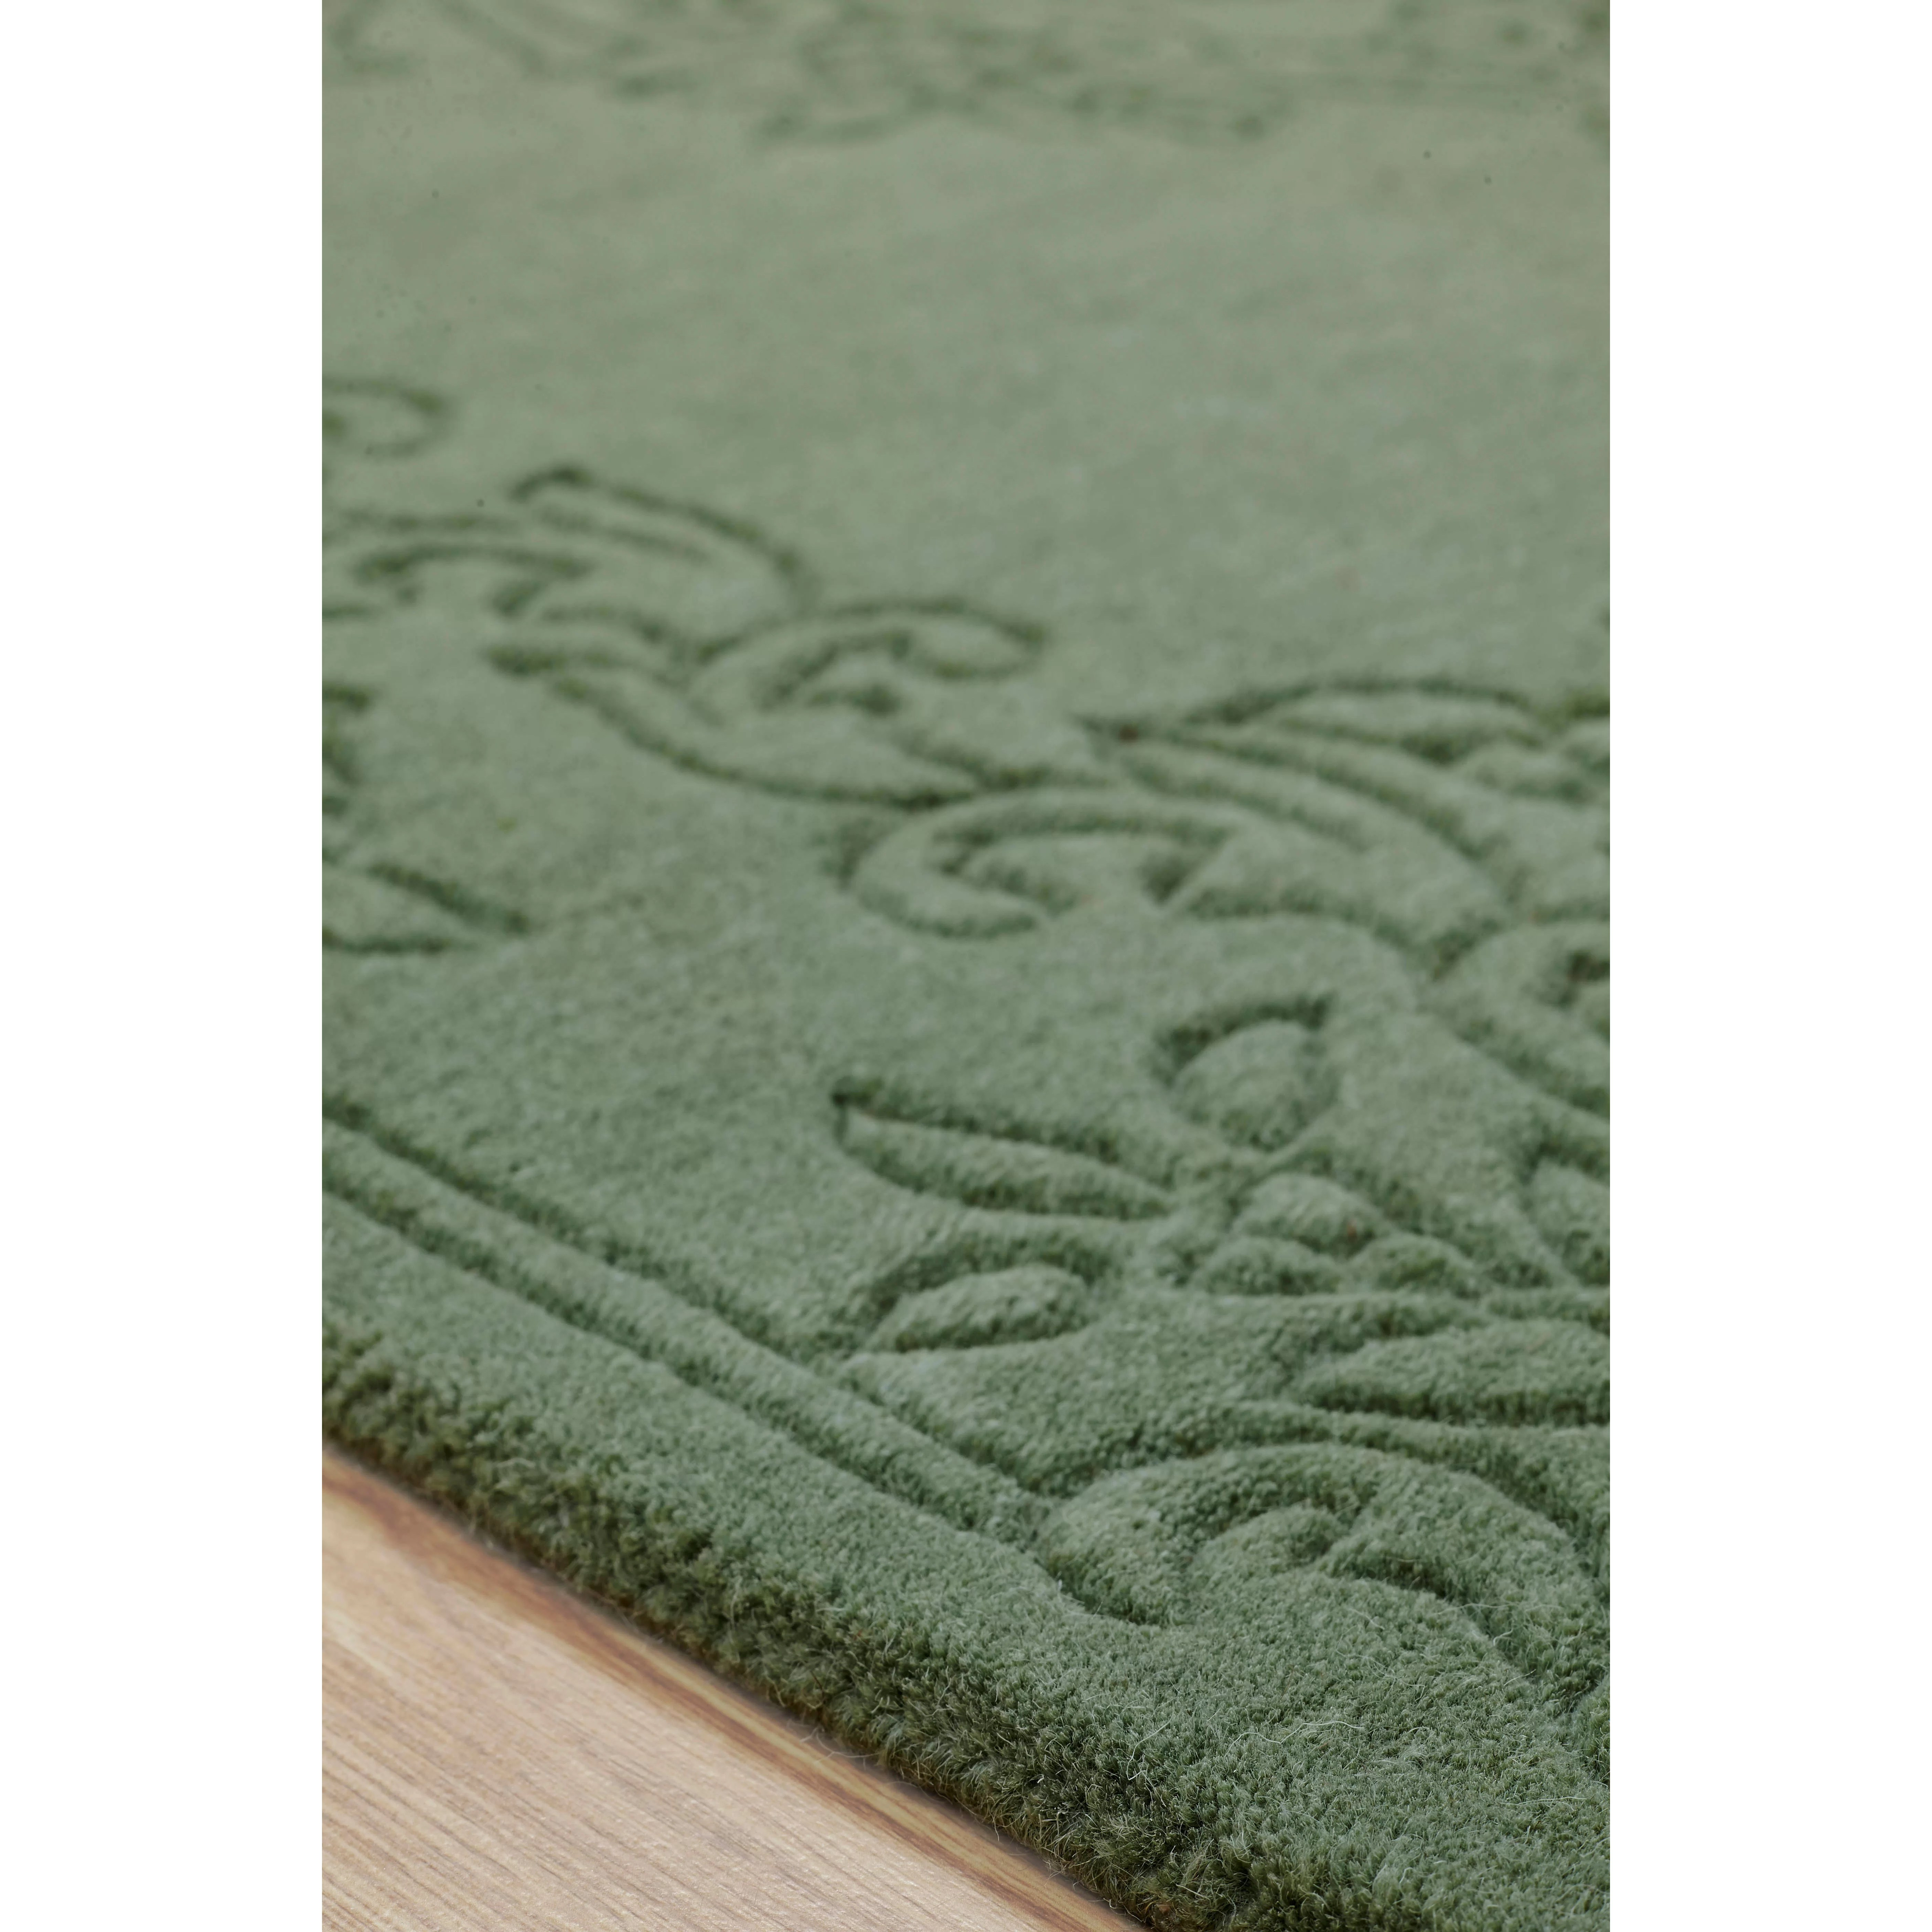 Woven Rugs Brook Lane Rugs Imperial Hand Woven Green Area Rug